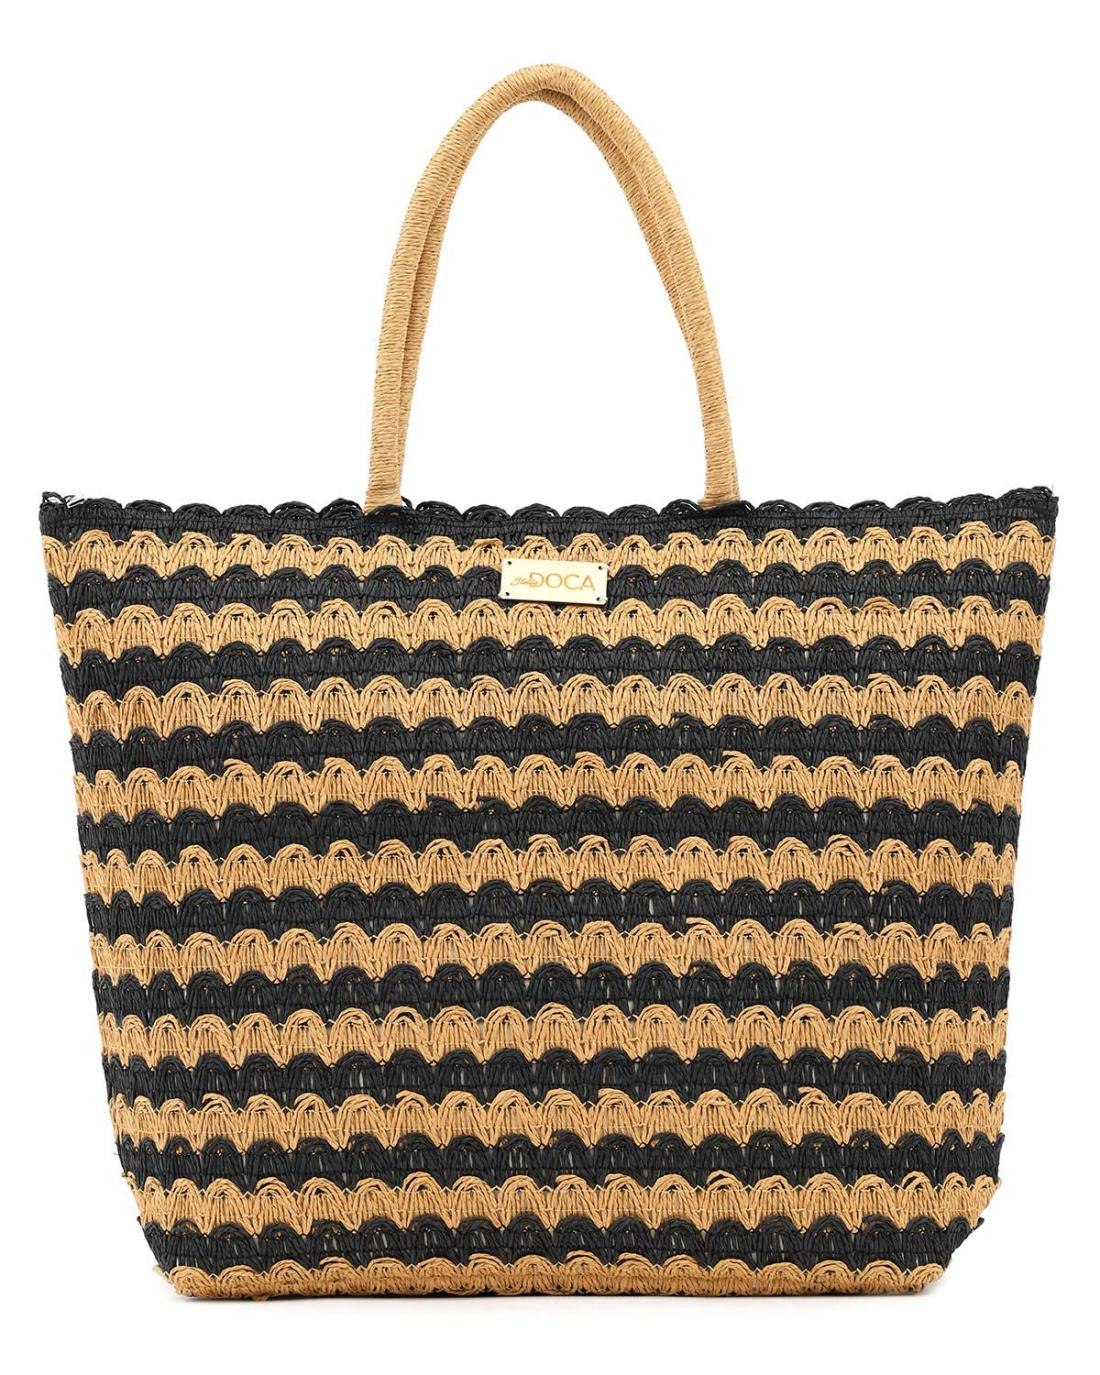 Details about  /Straw Tote Lots Of Room Beach Bag High Quality 15x16